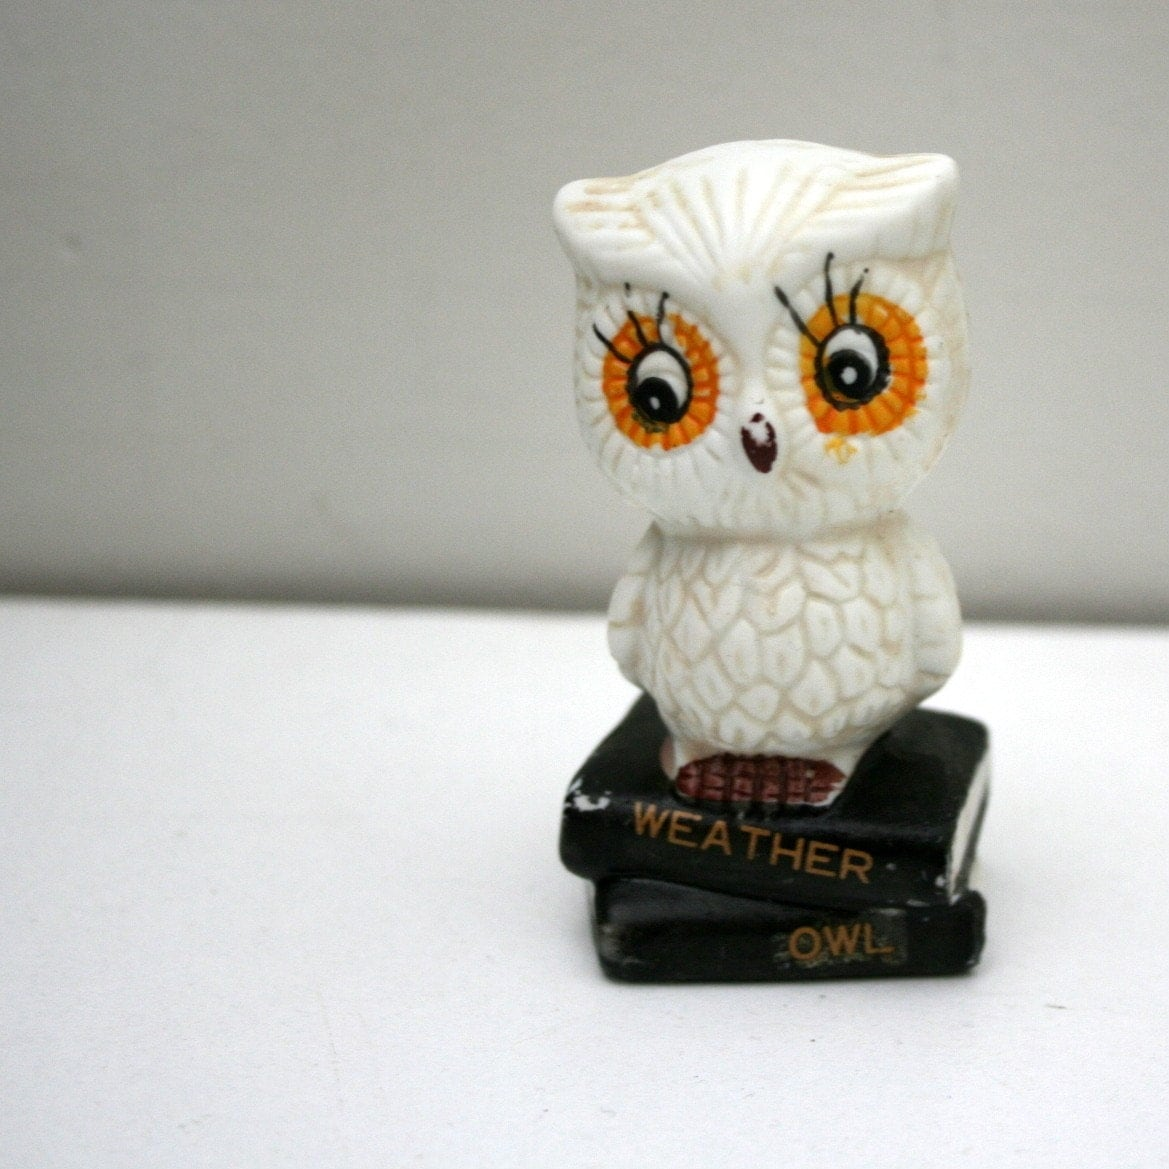 Little Wise Old Weather Owl Figure